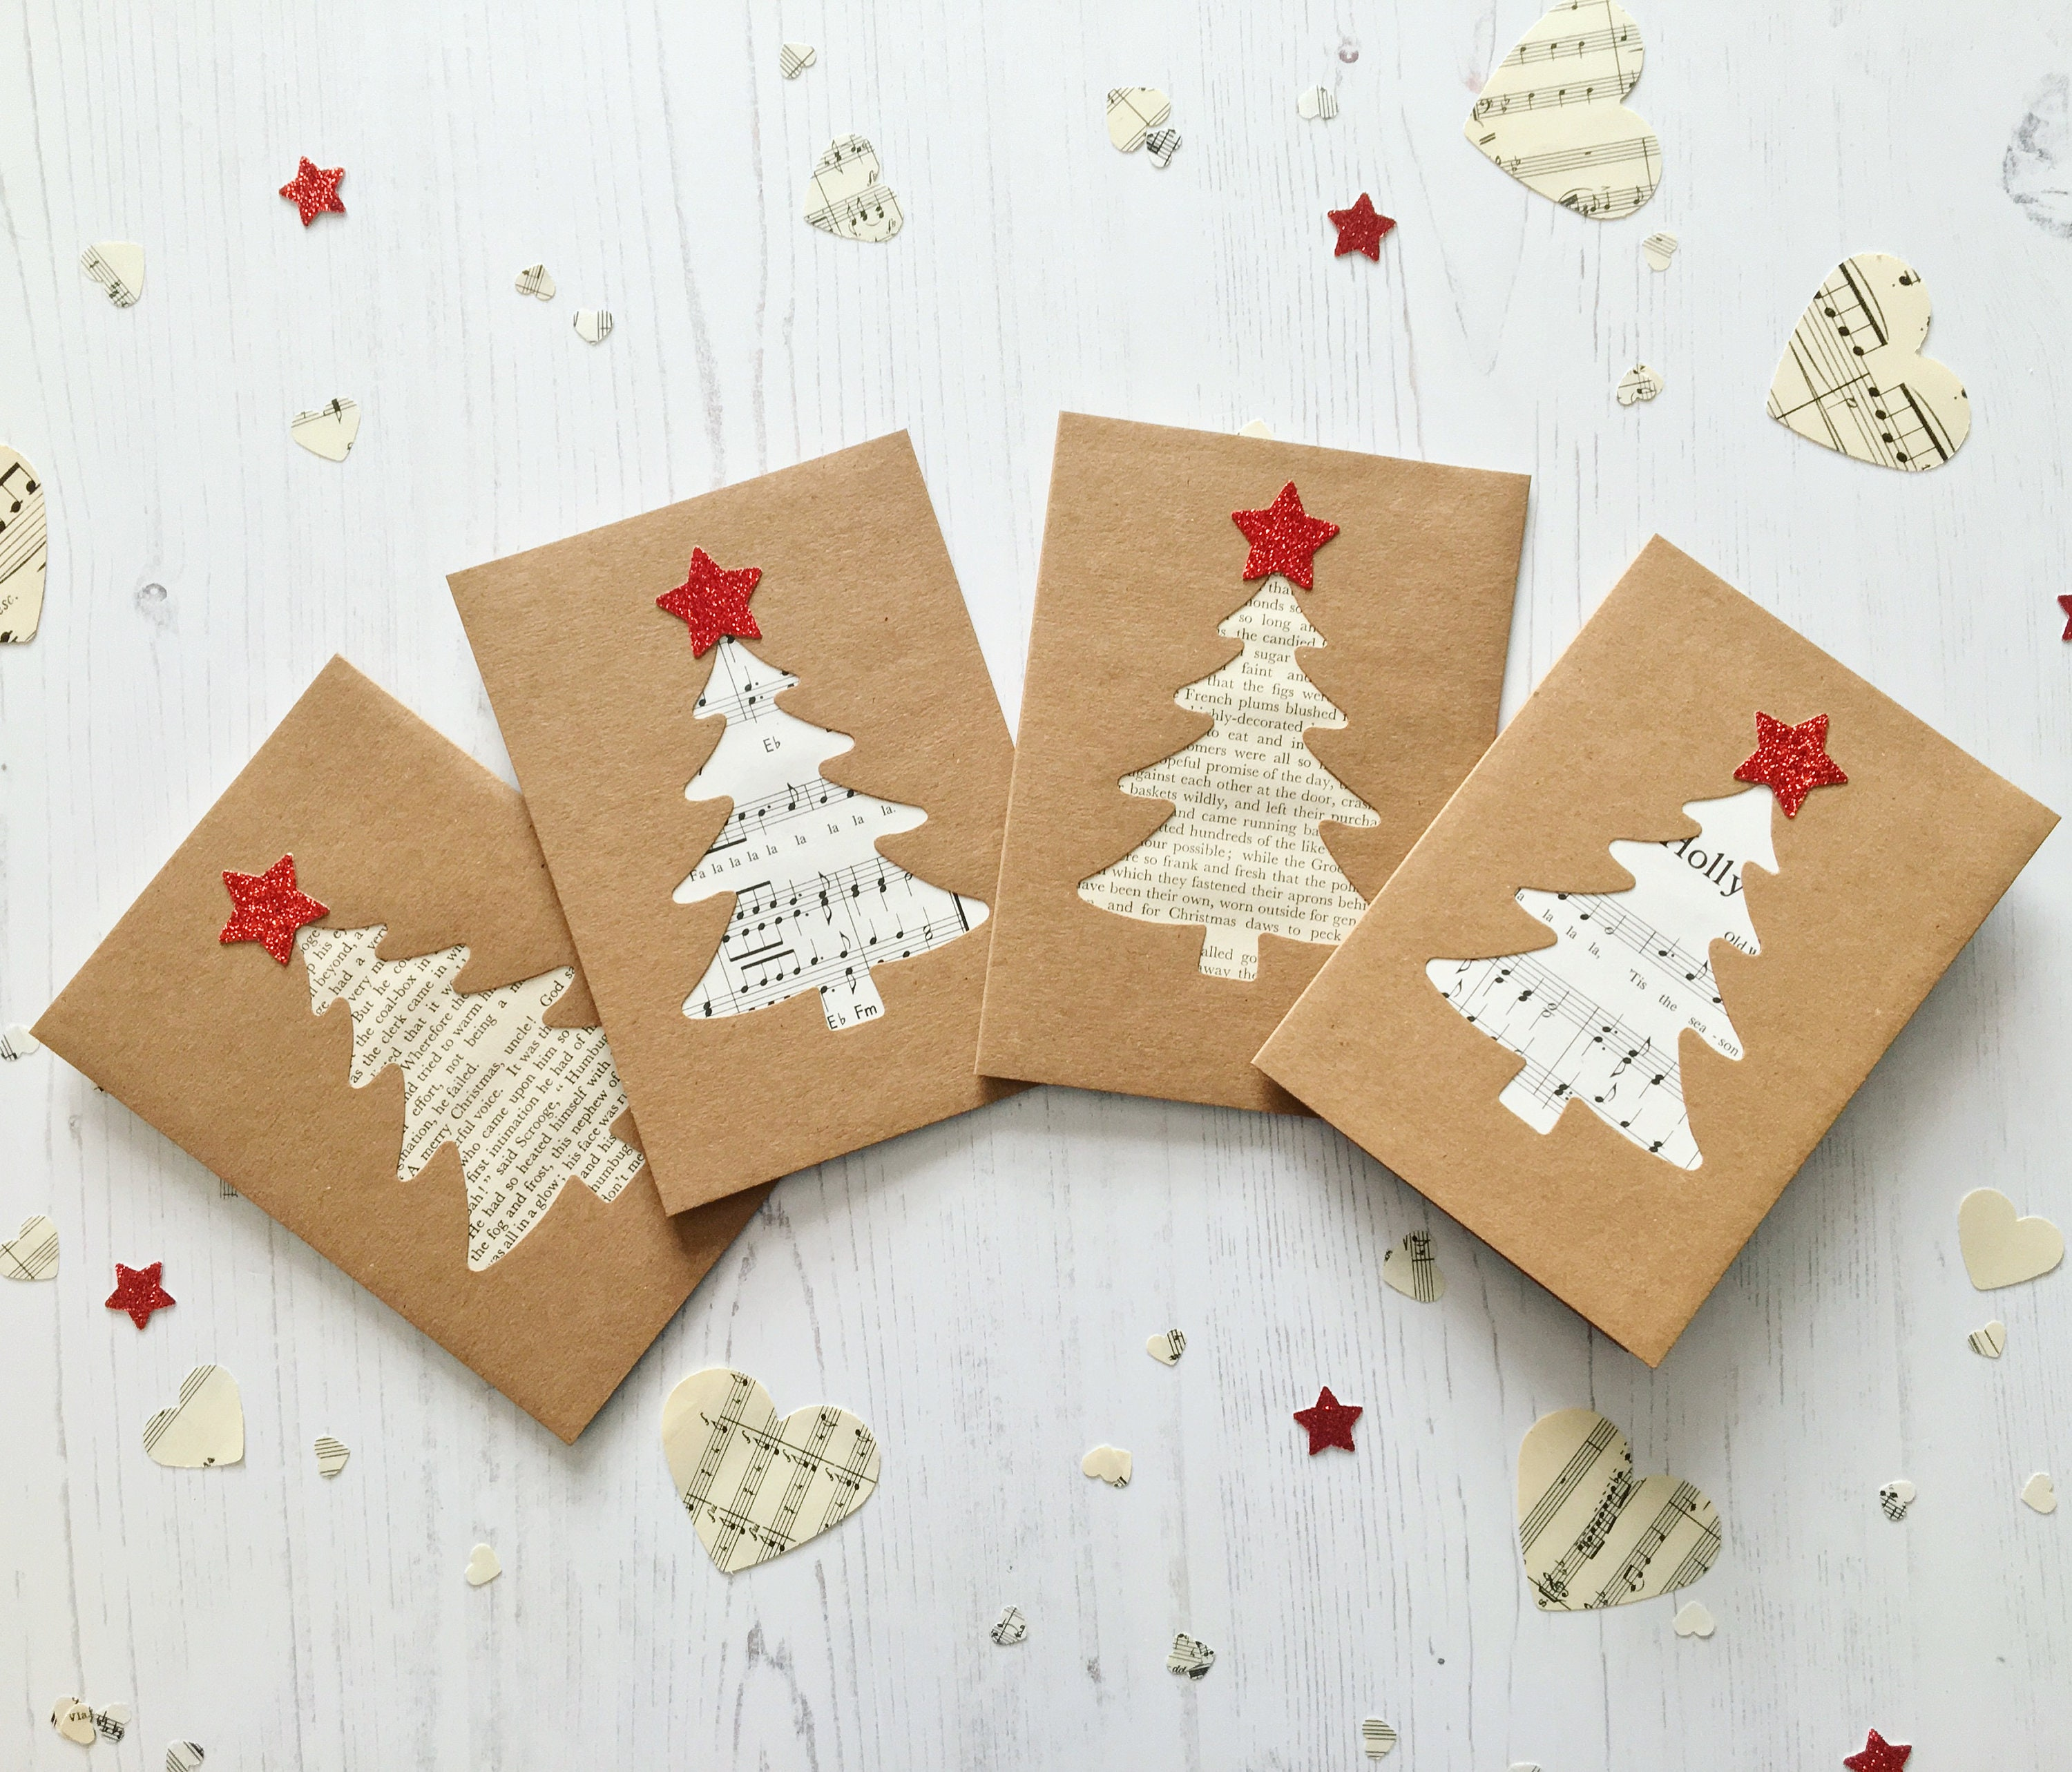 Handmade Christmas Cards 4 Pack, 2 Of Each Tree Design, Luxury Kraft ...